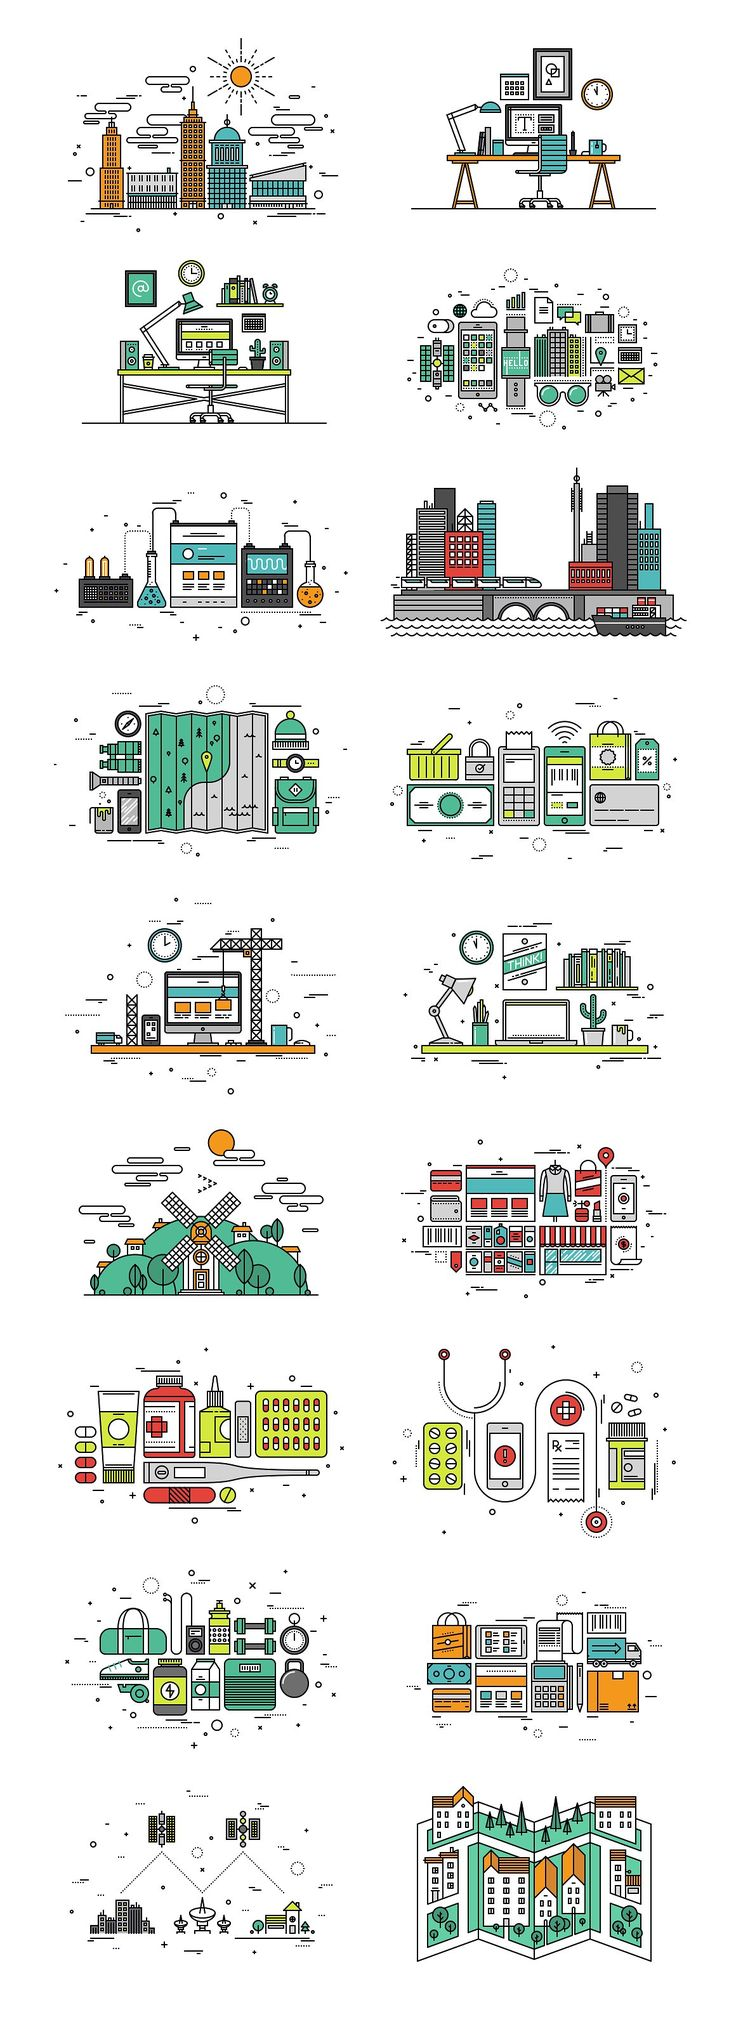 Thinline Illustrations Collection by Bloomicon on @creativemarket